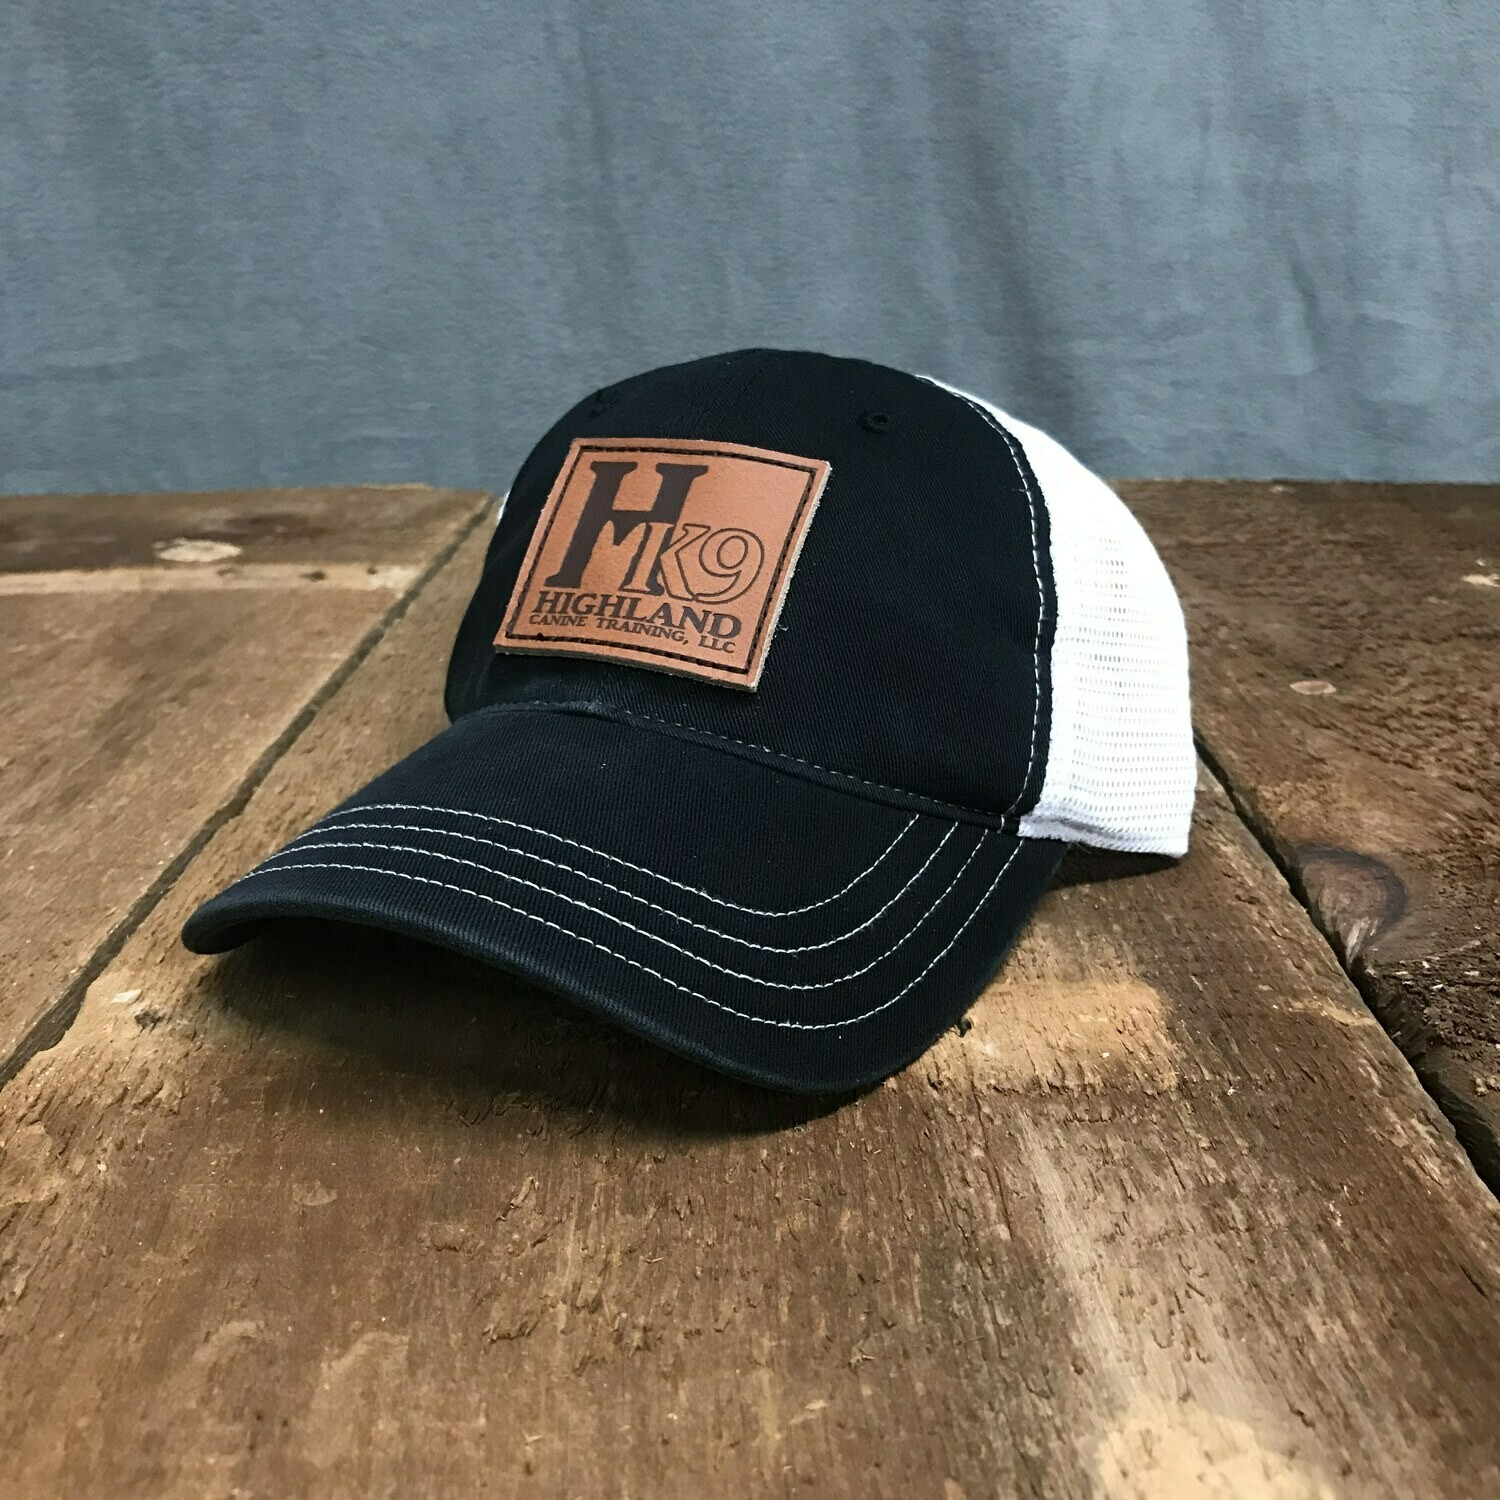 HK9 Leather Patch Hat